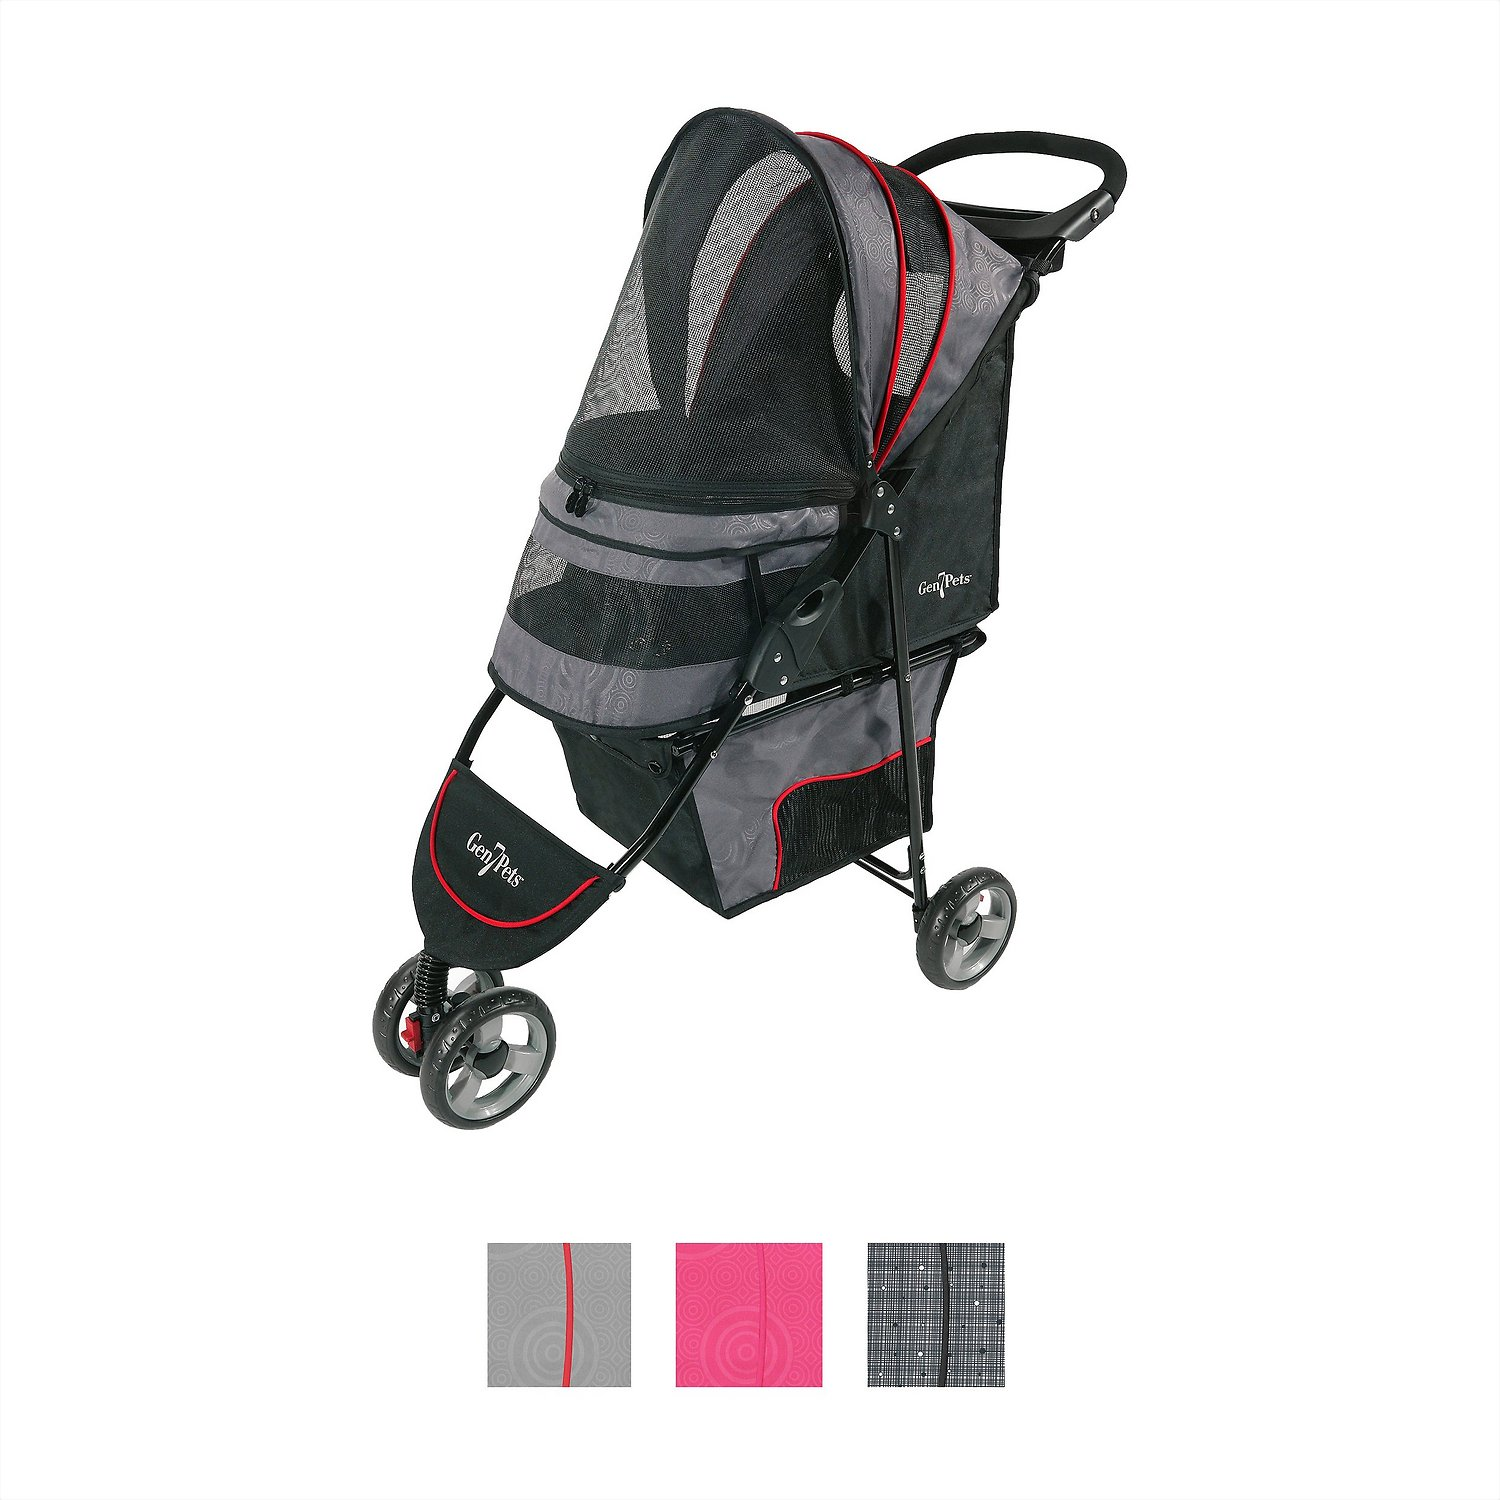 Dog Strollers Chewy.com Gen7pets Regal Plus Pet Stroller Gray Shadow Chewy